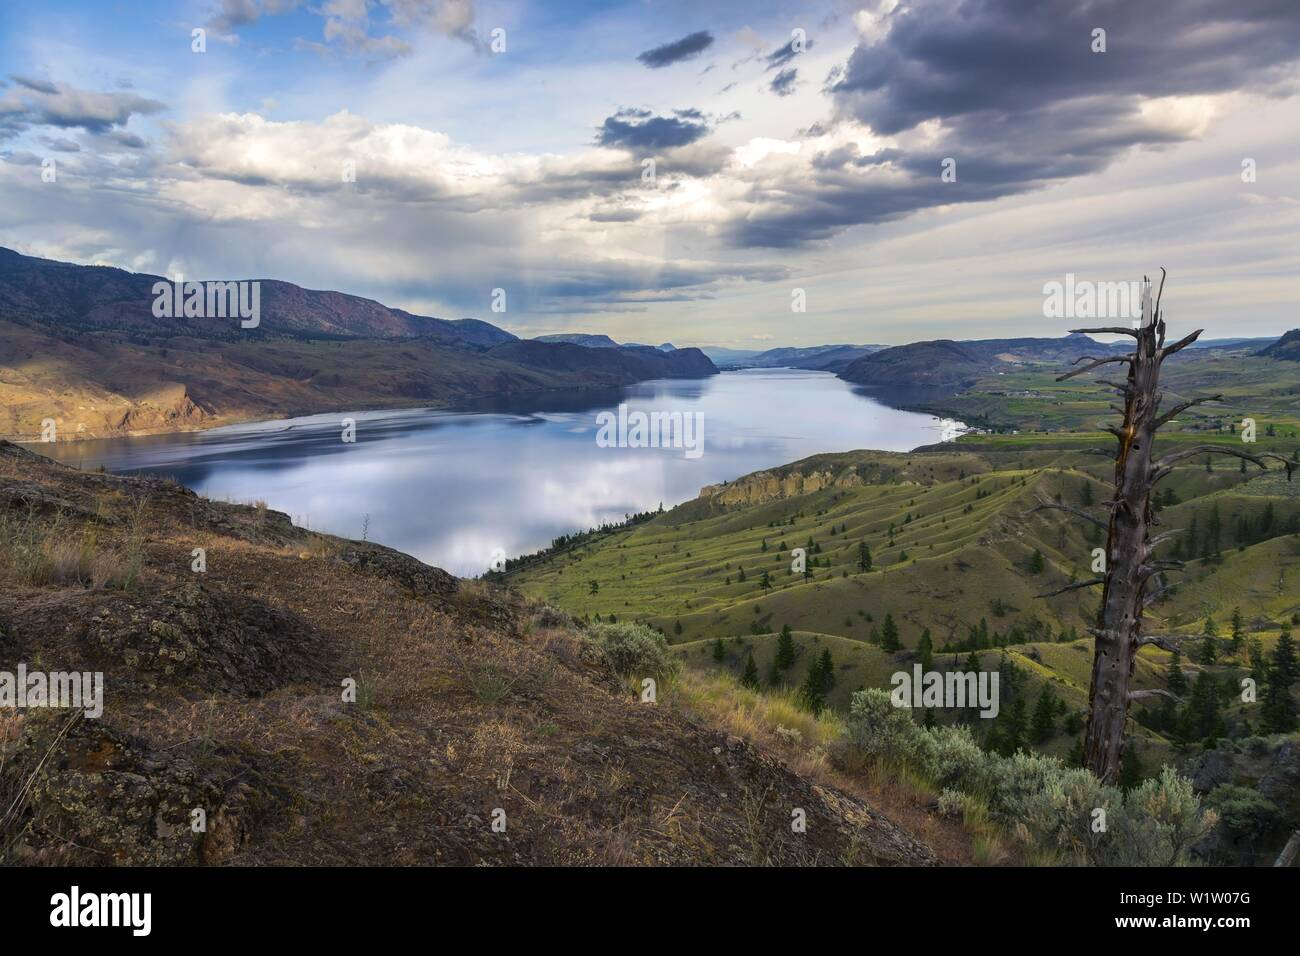 Sweeping Kamloops Lake Viewpoint on Trans-Canada Highway and Dramatic Sky Landscape, Interior of British Columbia, Canada Stock Photo